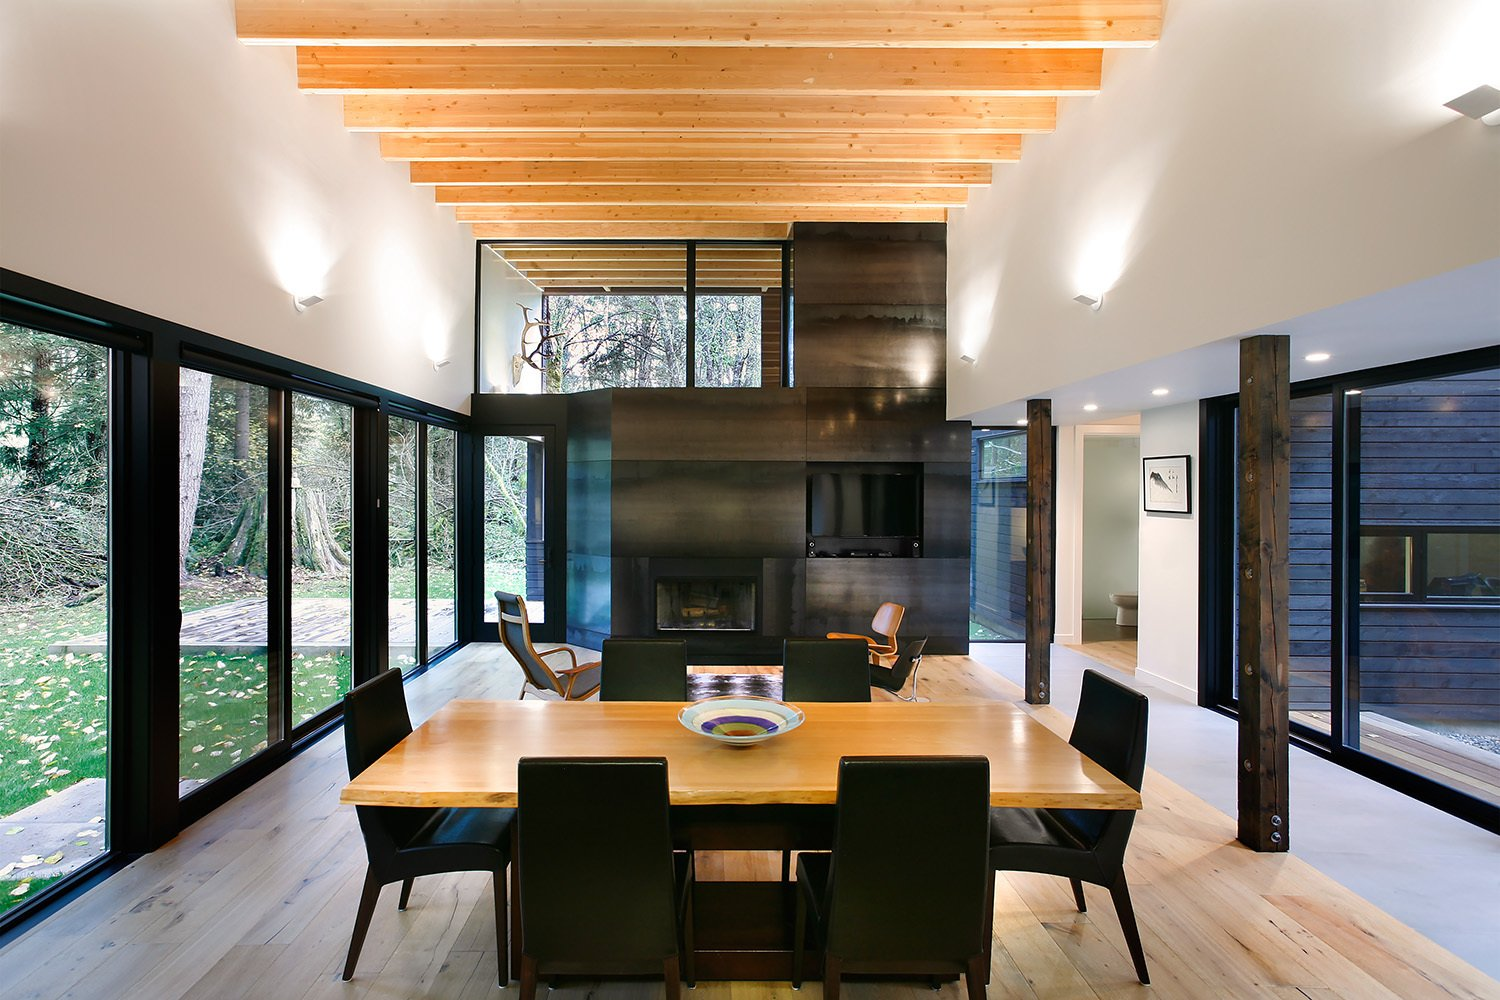 "The home's interior design was intentionally simple: access to light and views were a main priority. ""The roof in this room slopes gradually up to the south, providing a light monitor that brings in southern light filtered through the trees, while providing a framed view of the tops of the trees beyond,"" Hutchison says. Plank flooring by United Tile and Edge wall sconces by Belfer unite the living and dining spaces.  Courtyard House on a River by Kelly Dawson"